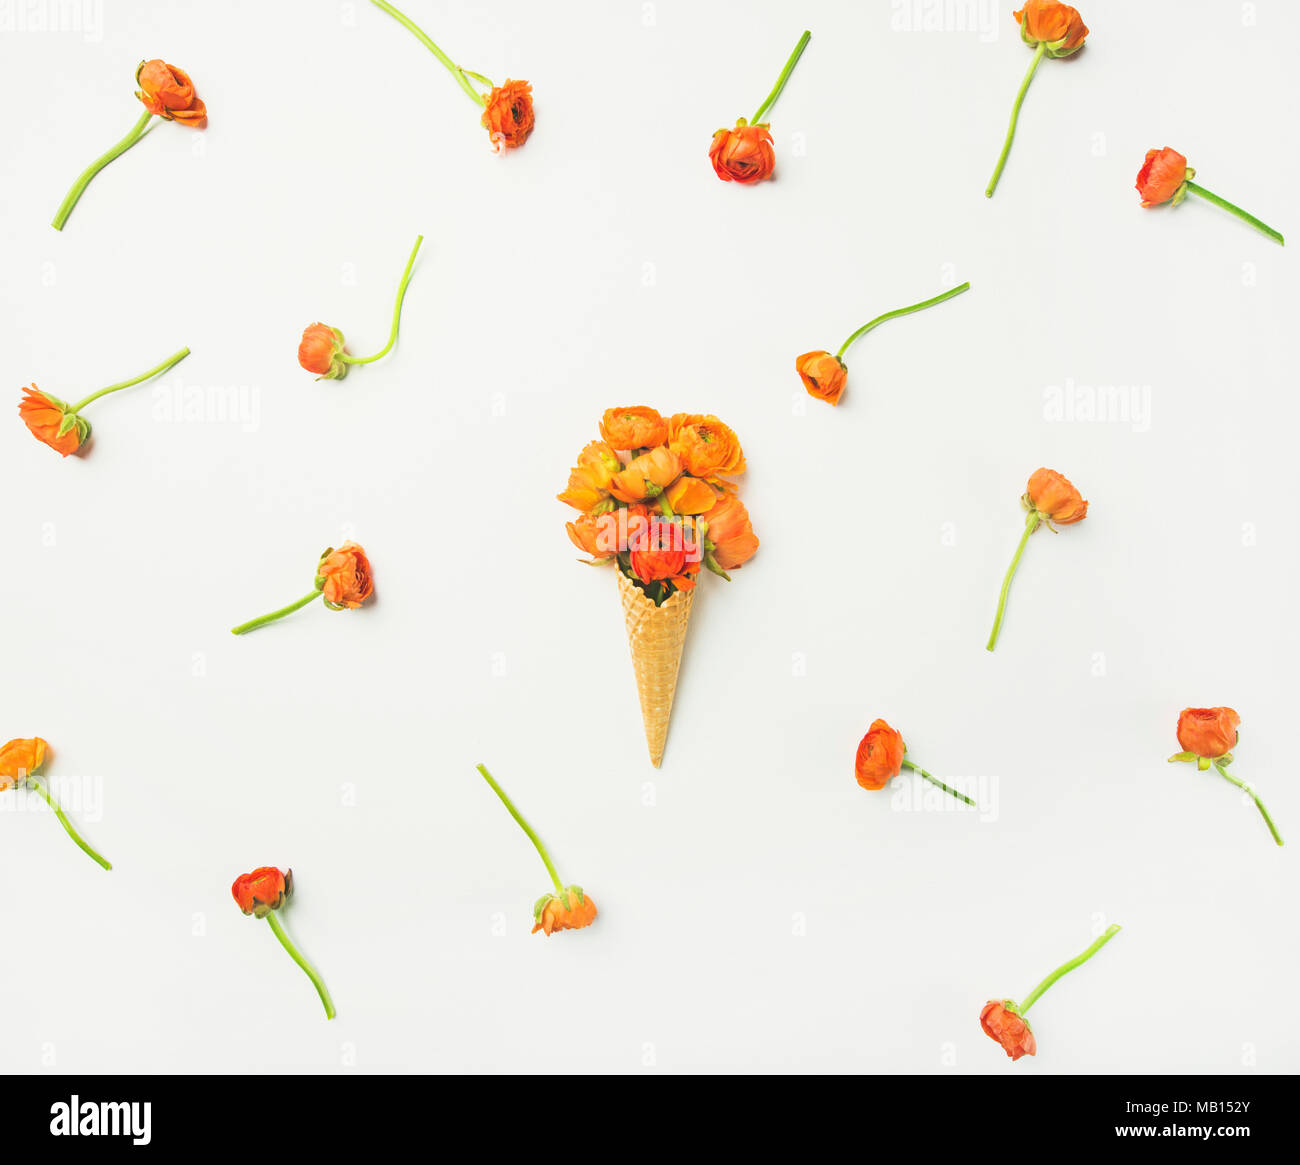 Flat-lay of waffle sweet cone with orange buttercup flowers over white background, top view, horizontal composition. Spring or summer mood concept Stock Photo